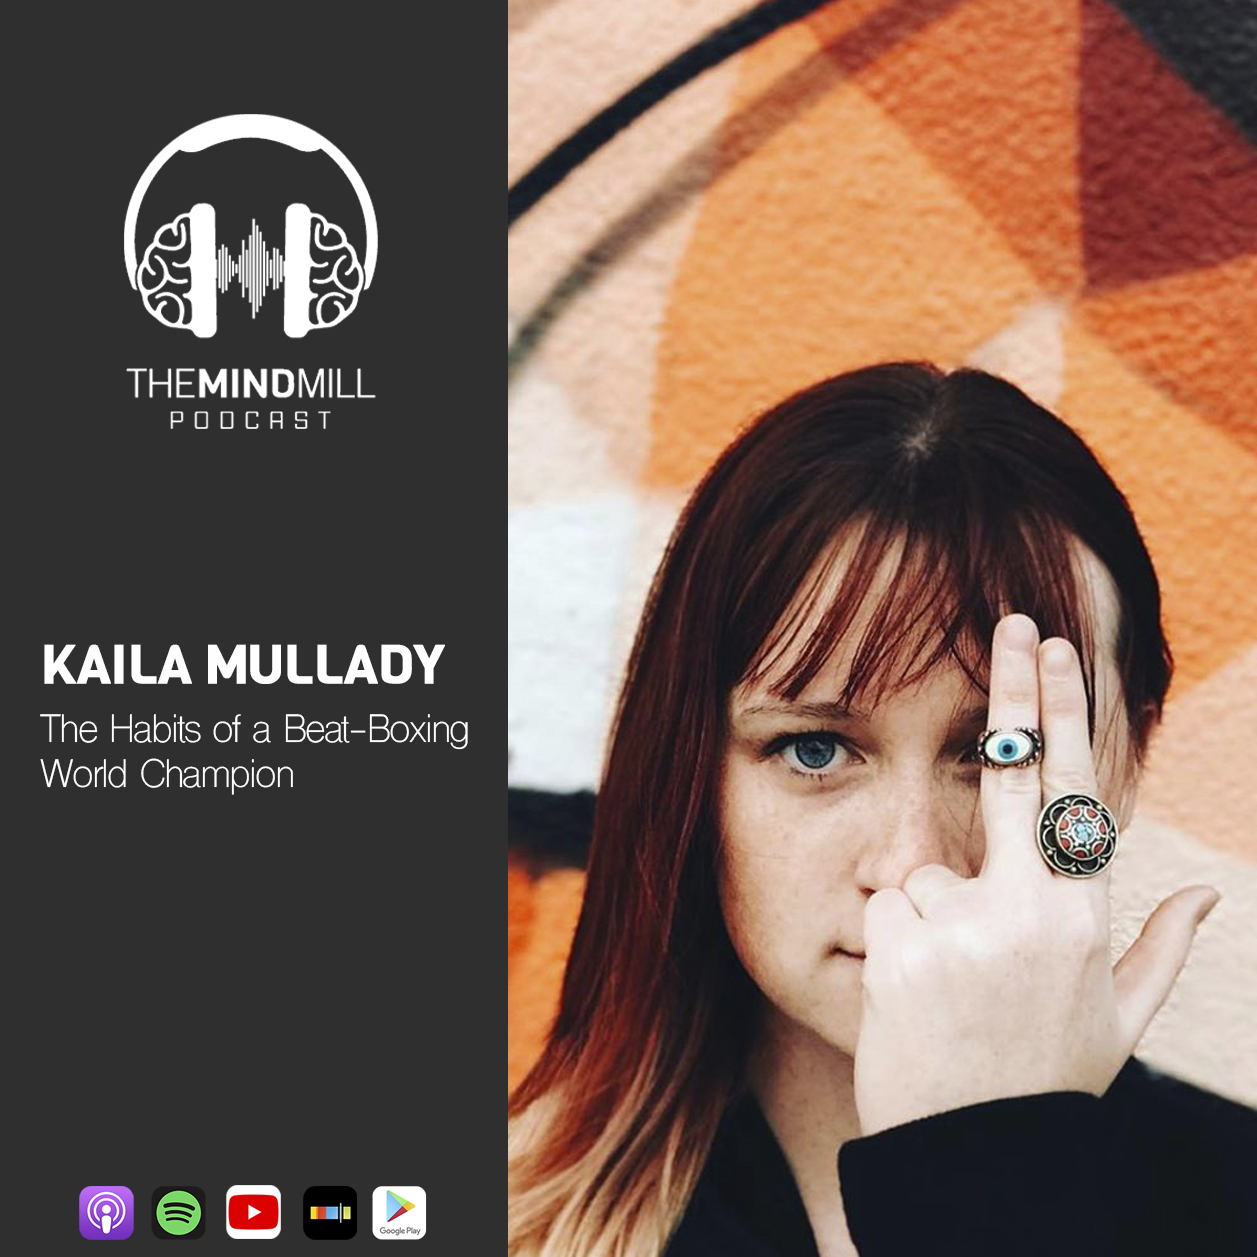 Kaila Mullady | The Habits of a Beat-Boxing World Champion